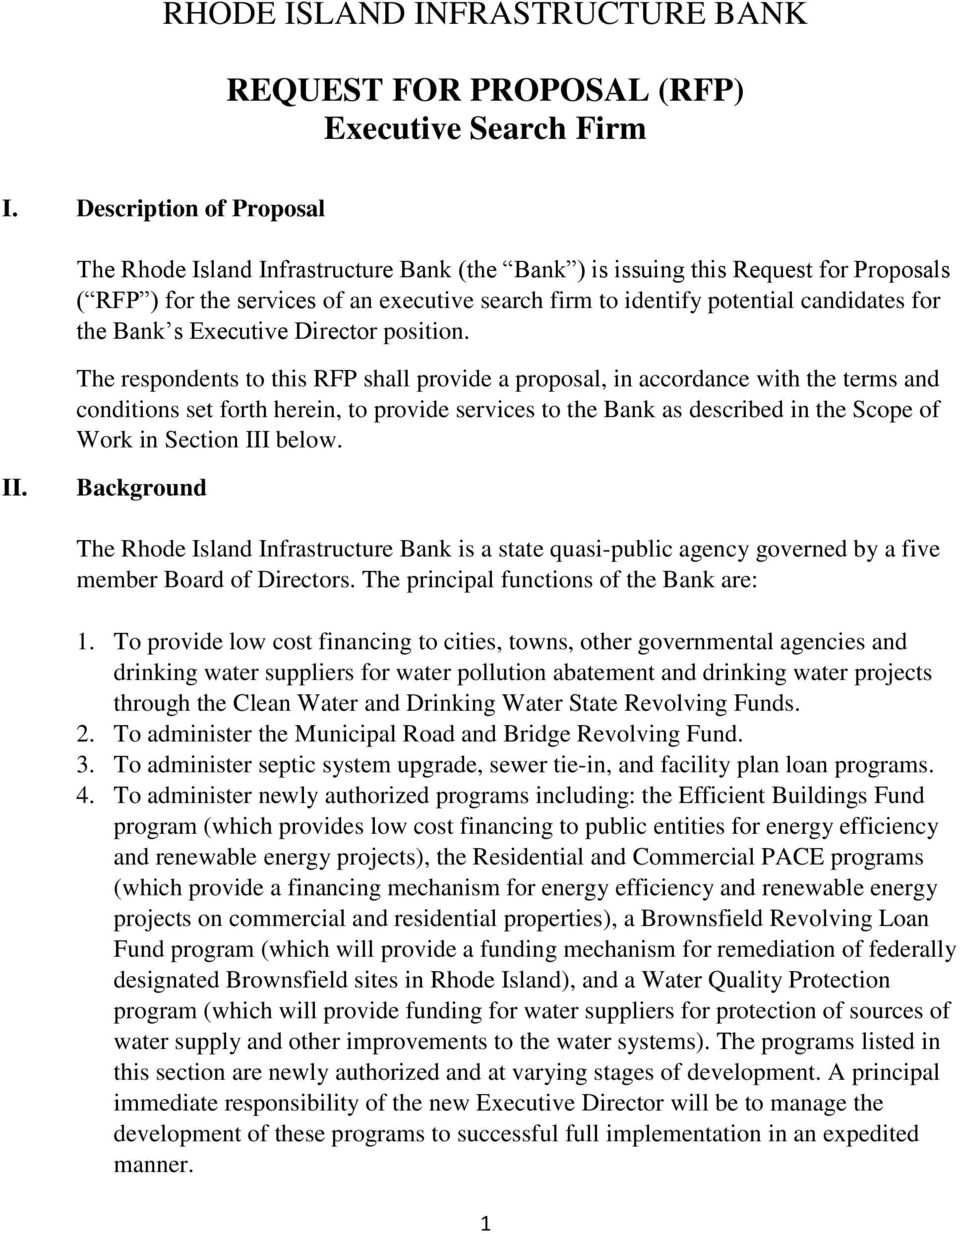 RHODE ISLAND INFRASTRUCTURE BANK  REQUEST FOR PROPOSAL (RFP